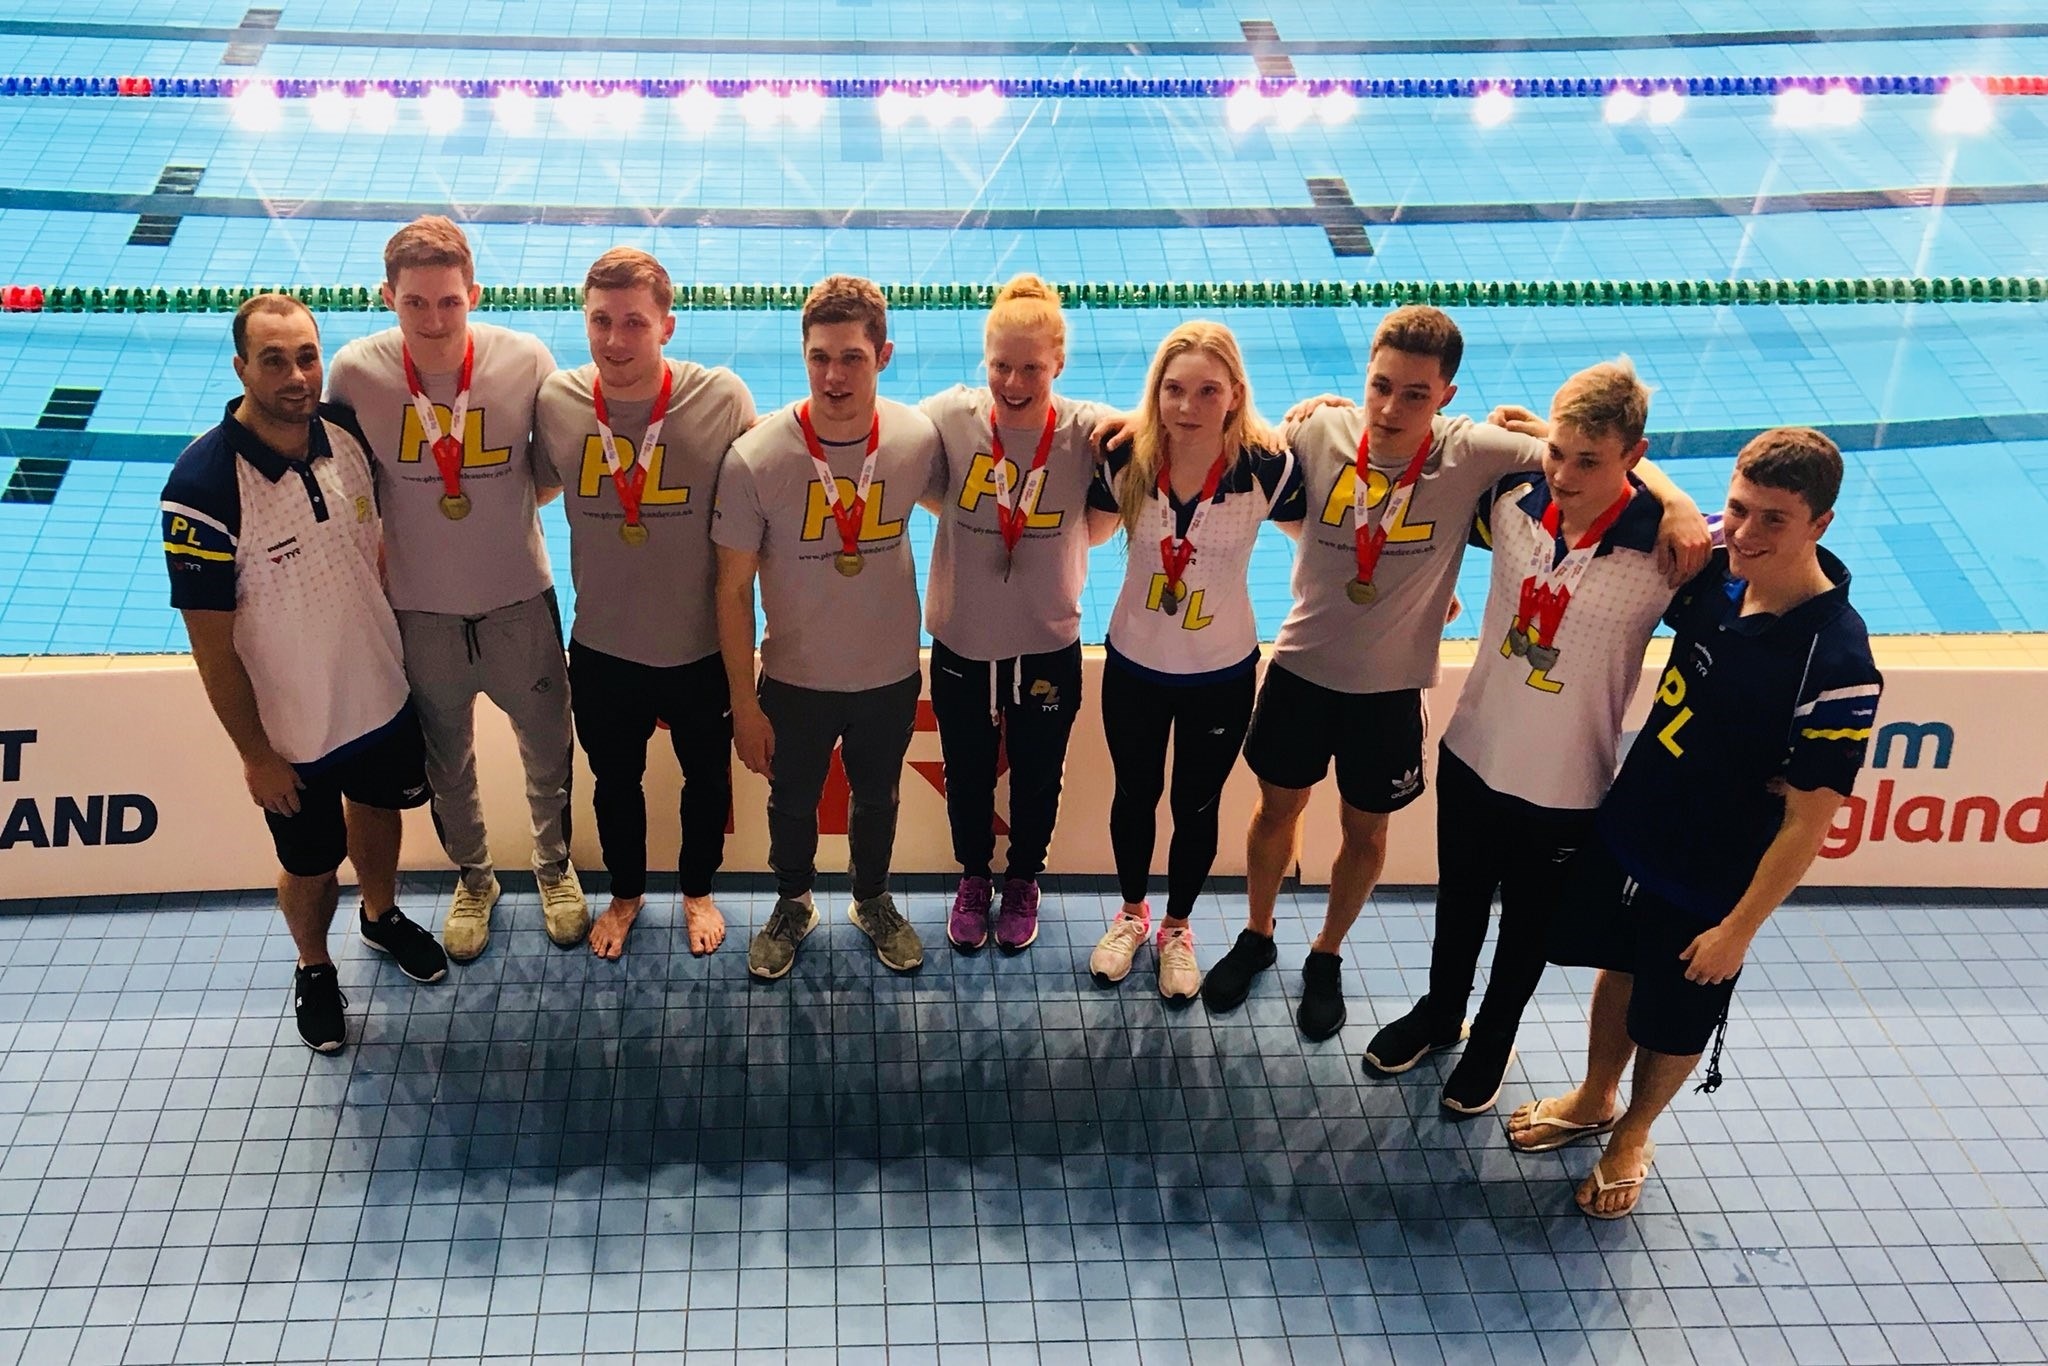 Plymouth Leander swimmers take three titles in one night at the English National Championships